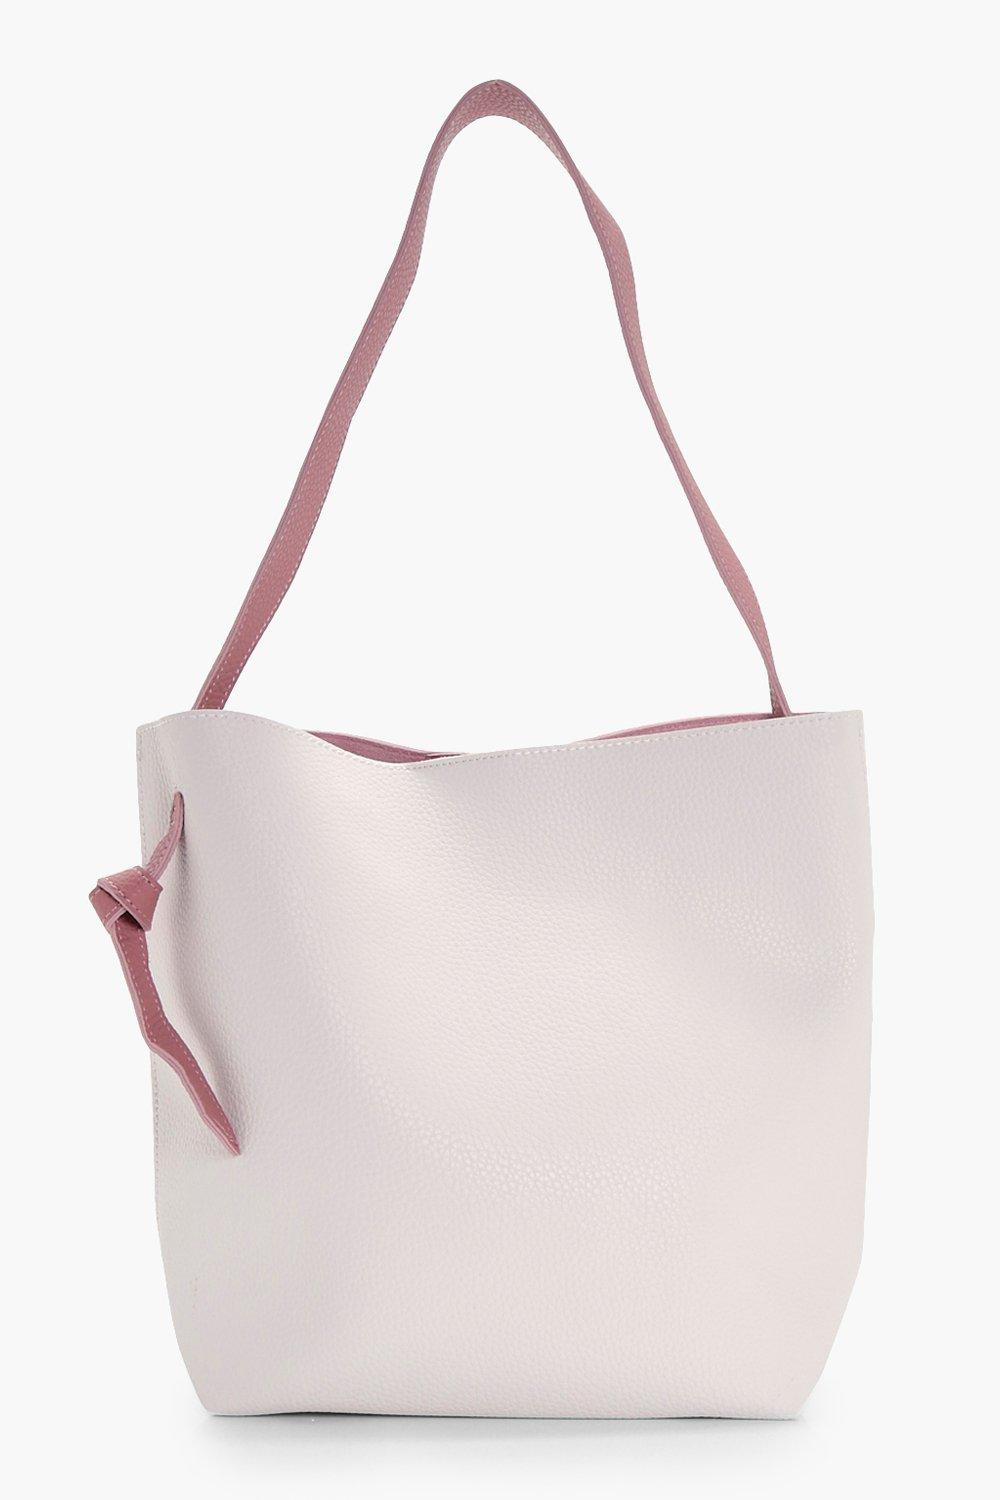 Contrast Handle Shopper - white - Anya Contrast Ha